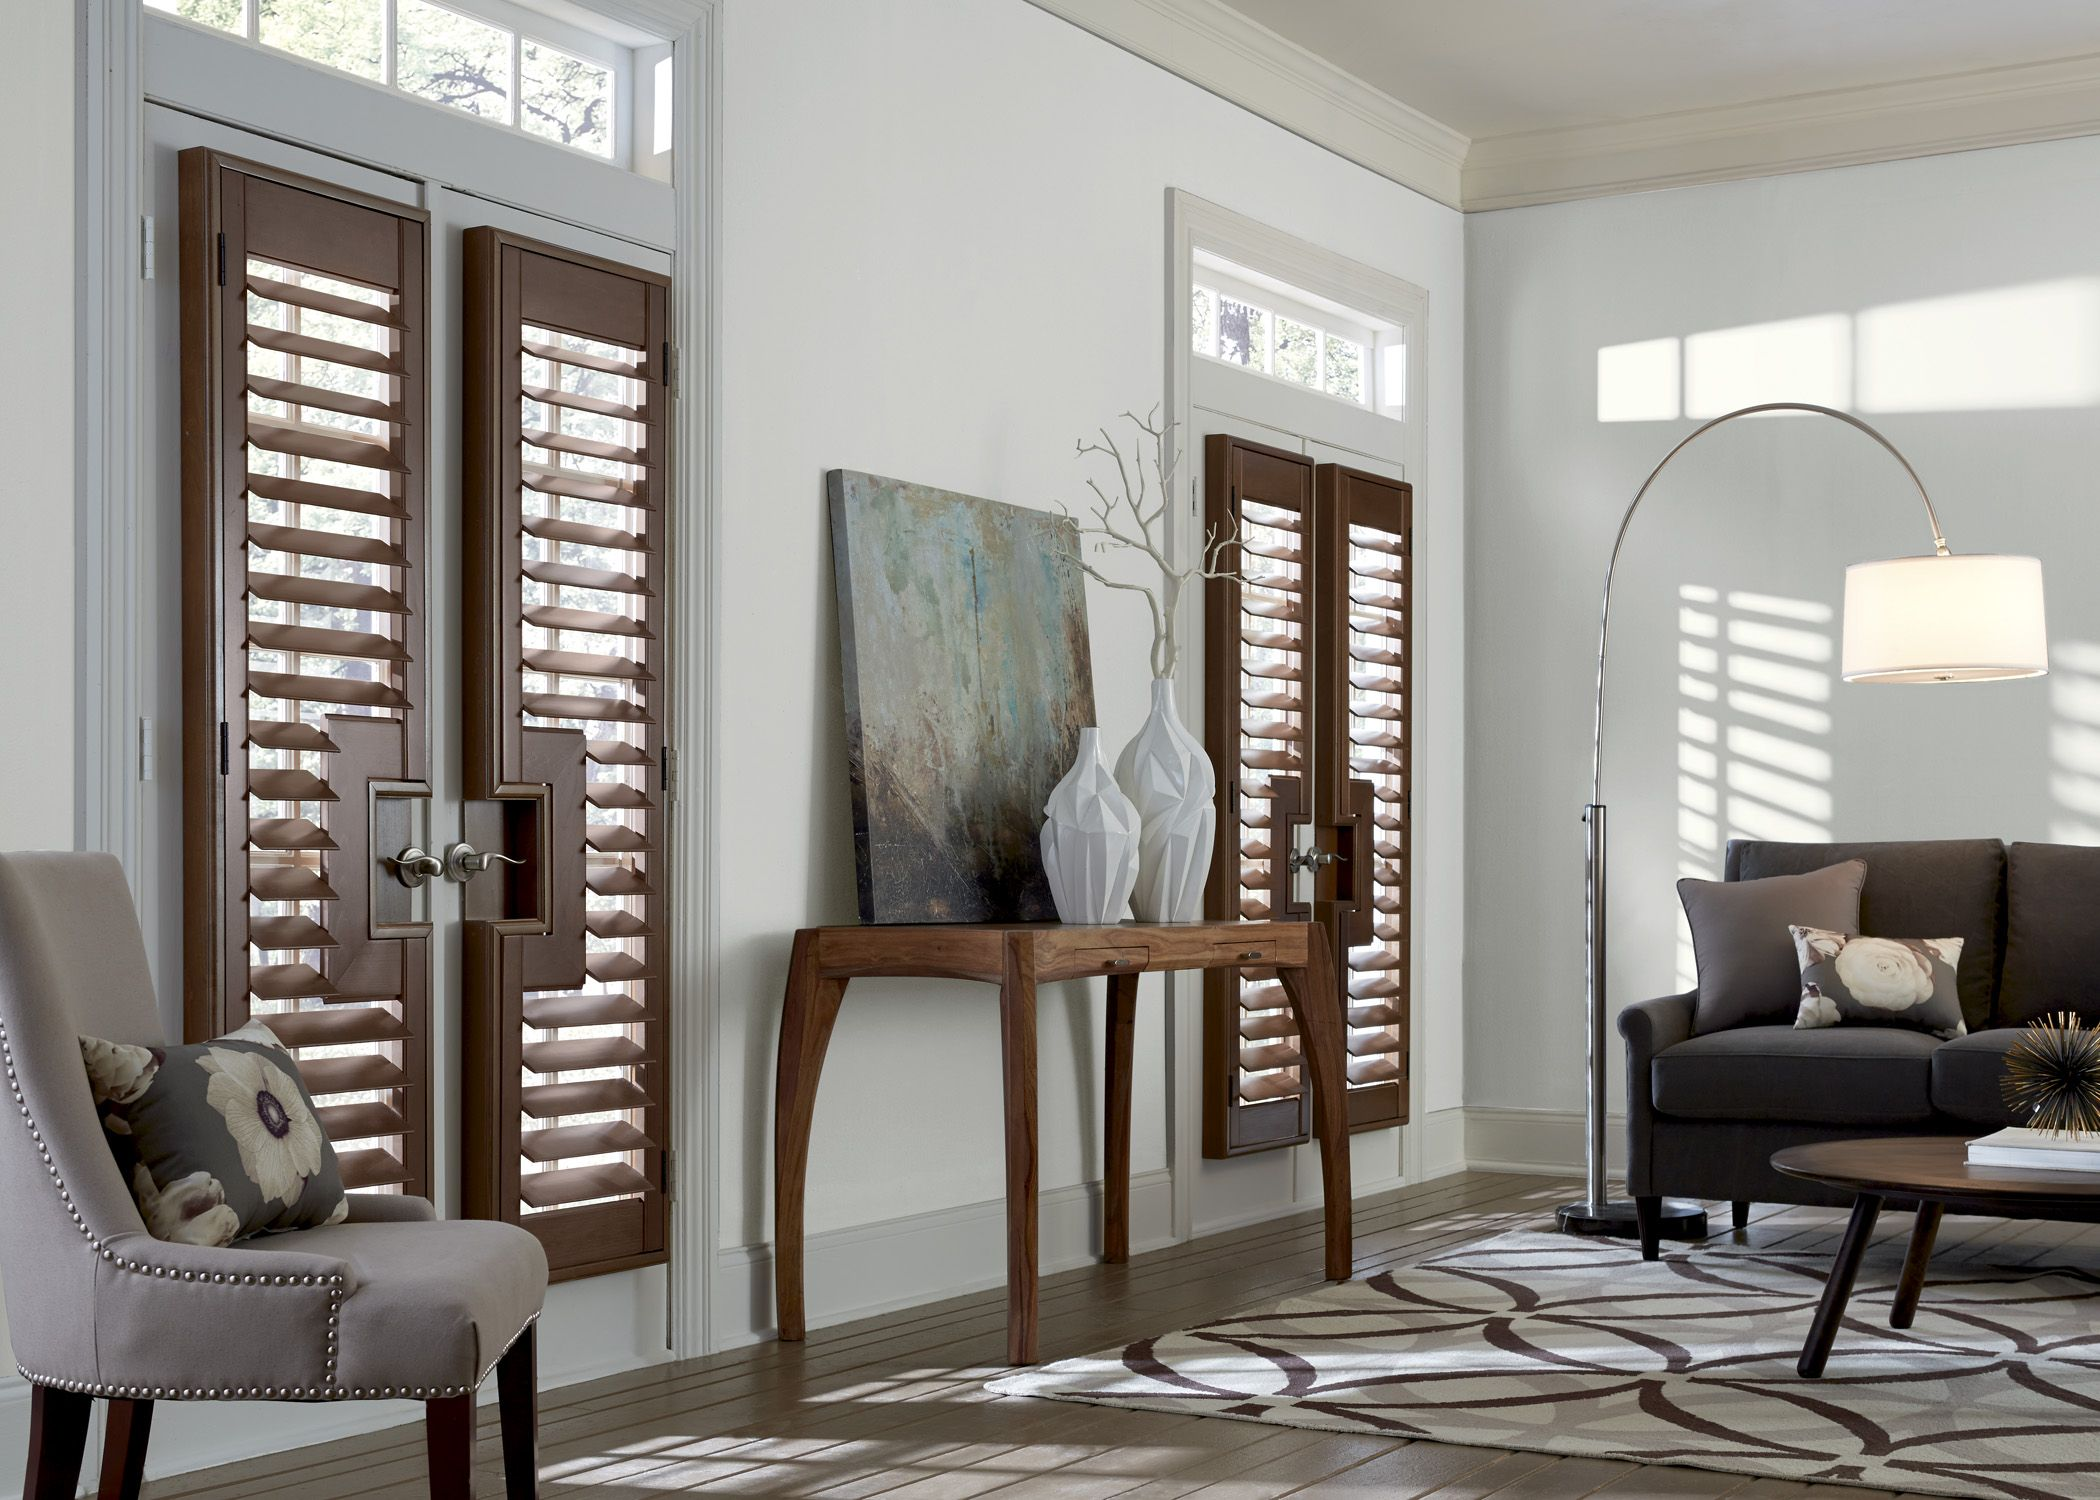 Professional Home Decorating And Designer Products In 2020 Interior Doors For Sale Home Decor Custom Shutters #plantation #shutters #in #living #room